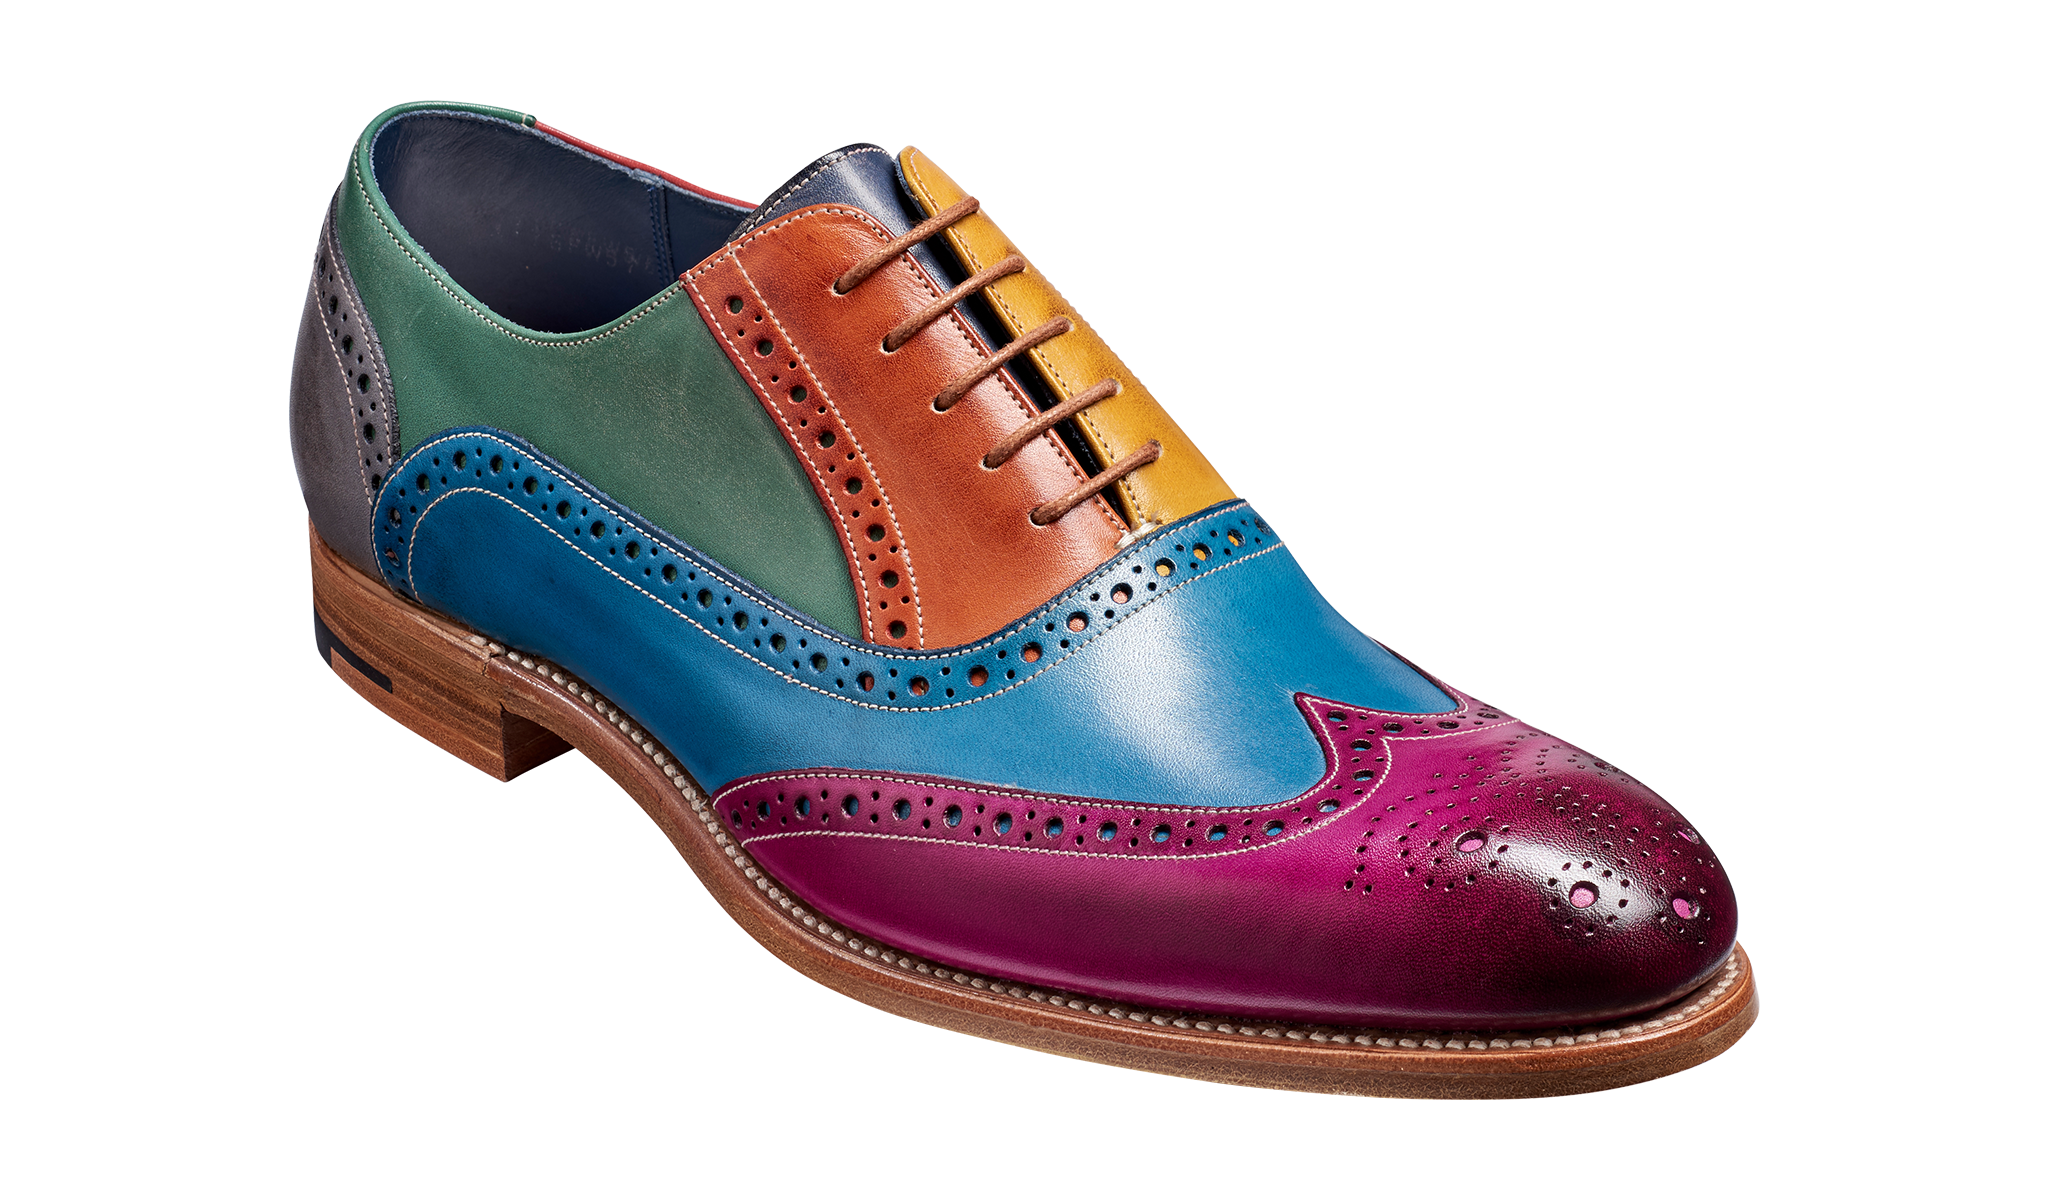 Men's multi-colored brogue shoe by Barker